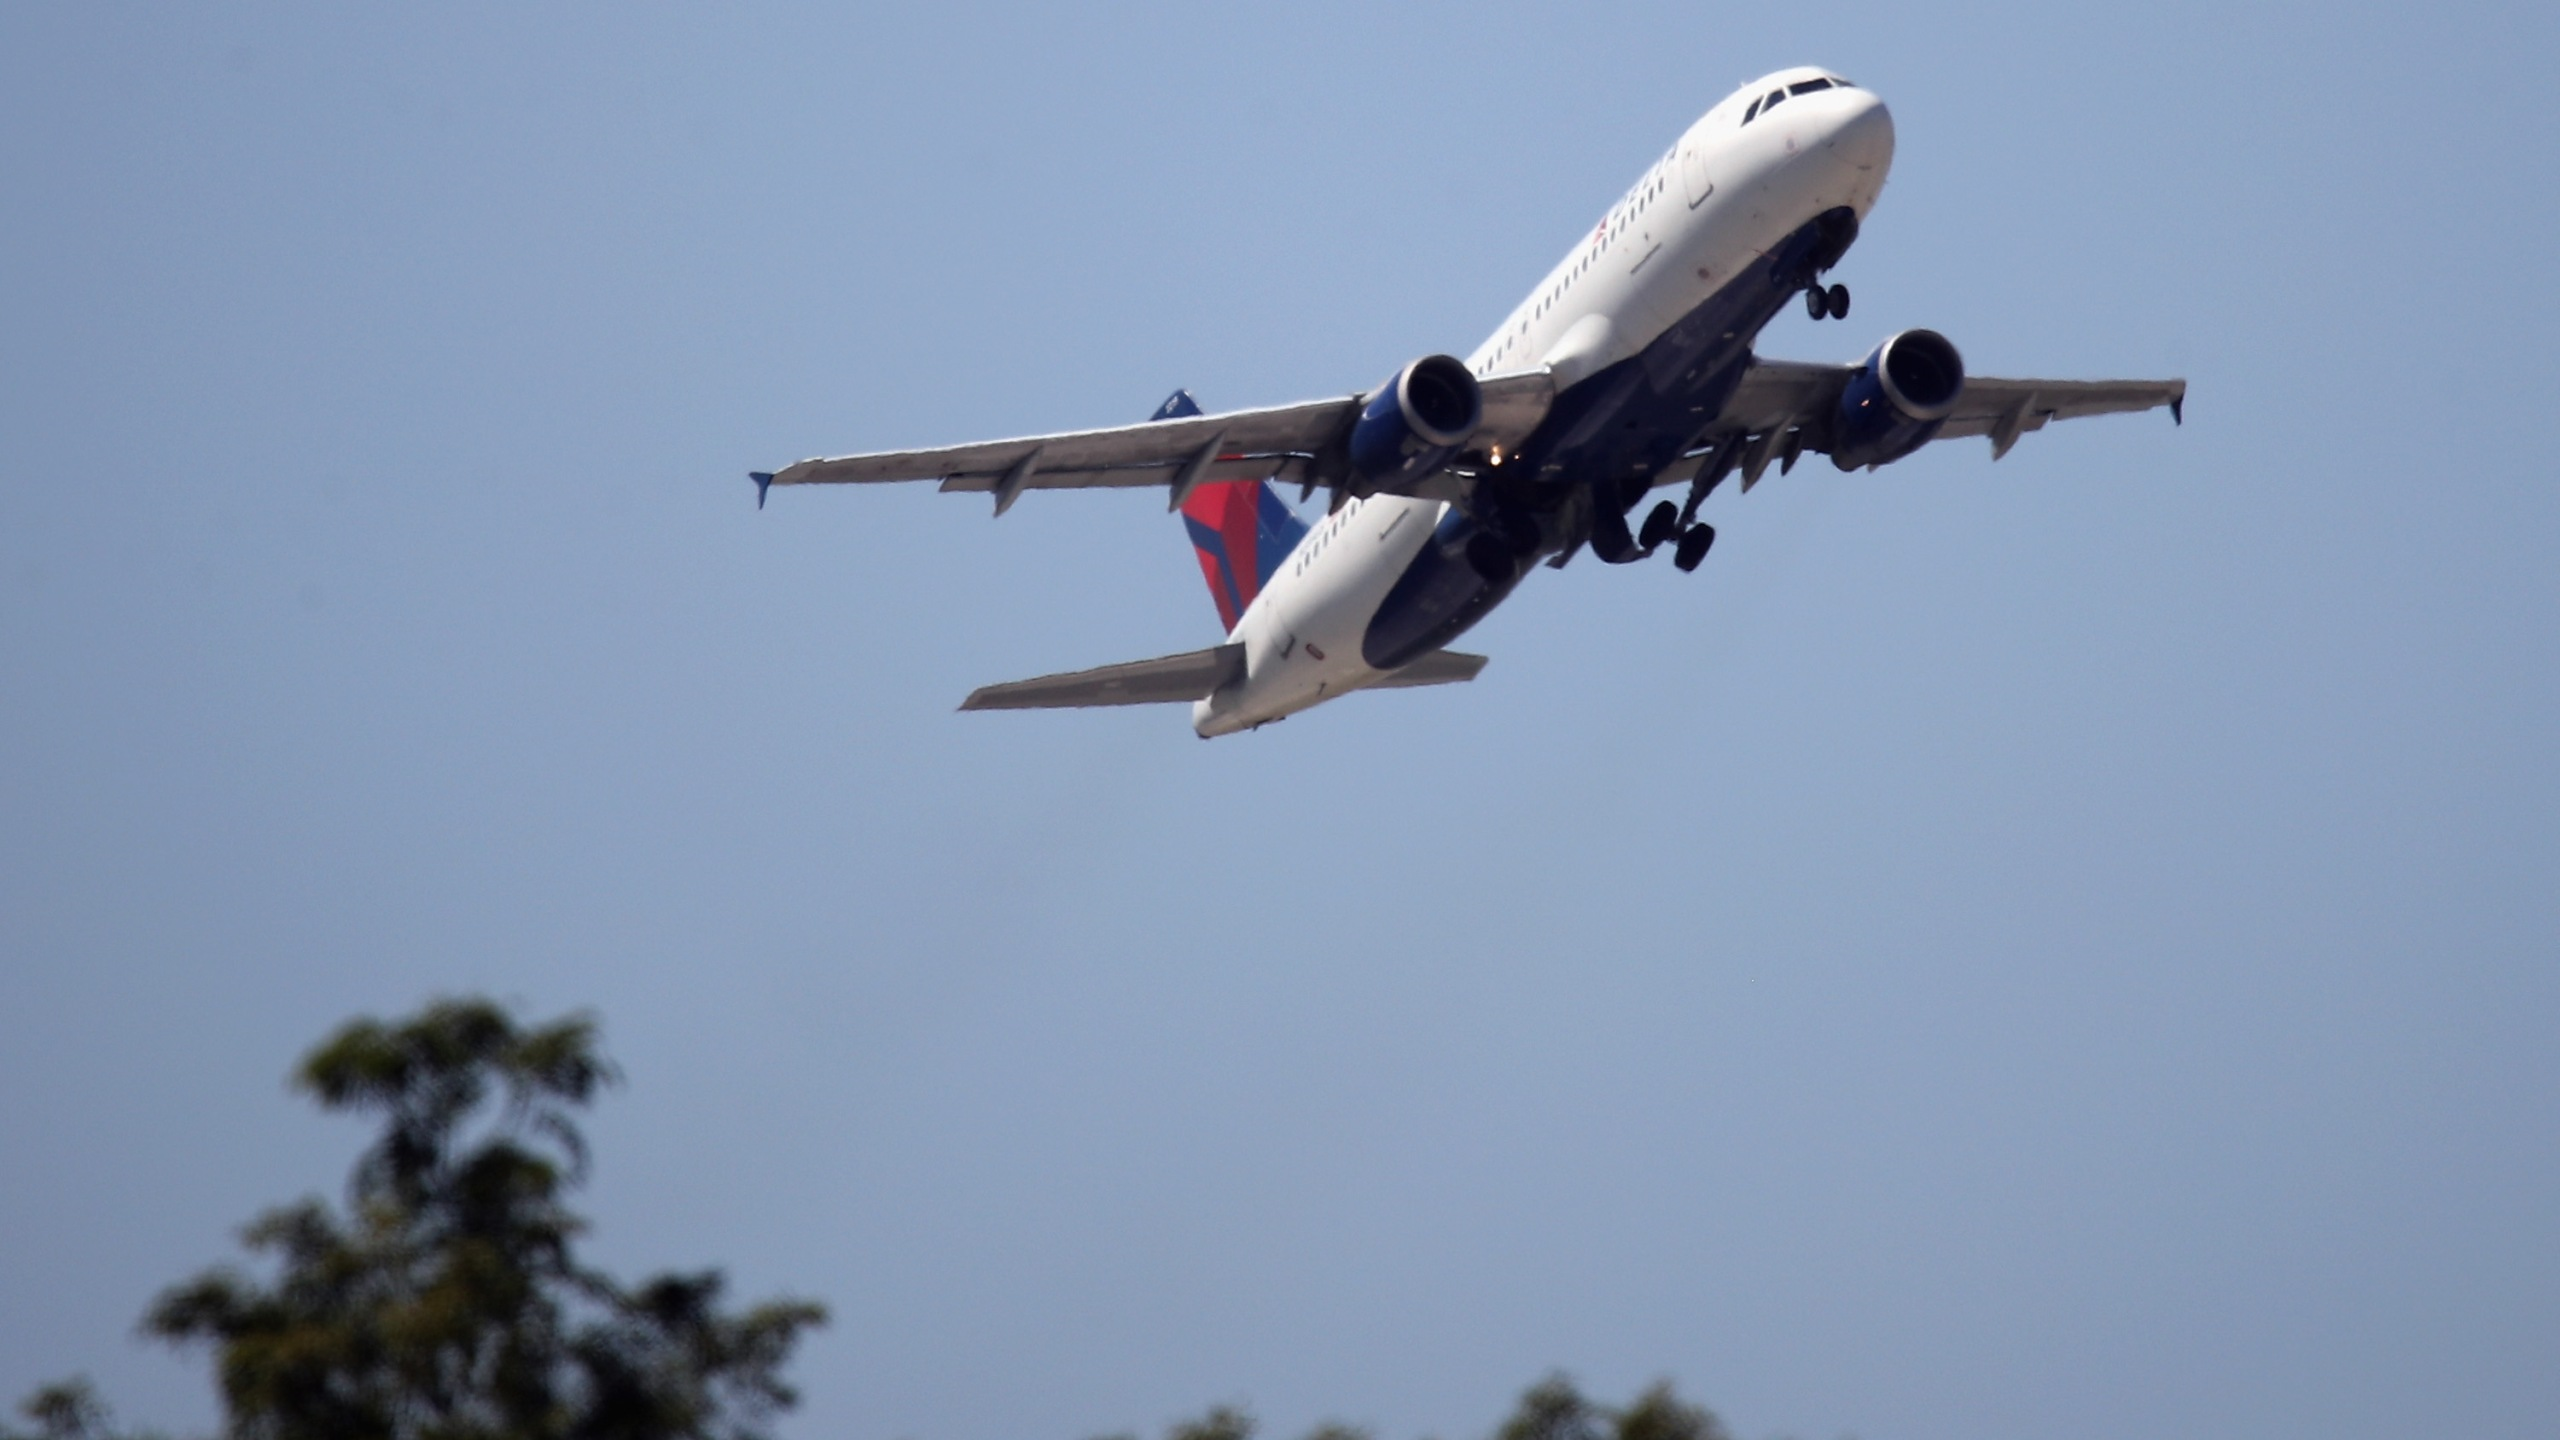 An Airbus A320-211 operated by Delta Airlines takes off from JFK Airport on August 24, 2019 in the Queens borough of New York City. ( Bruce Bennett/Getty Images)